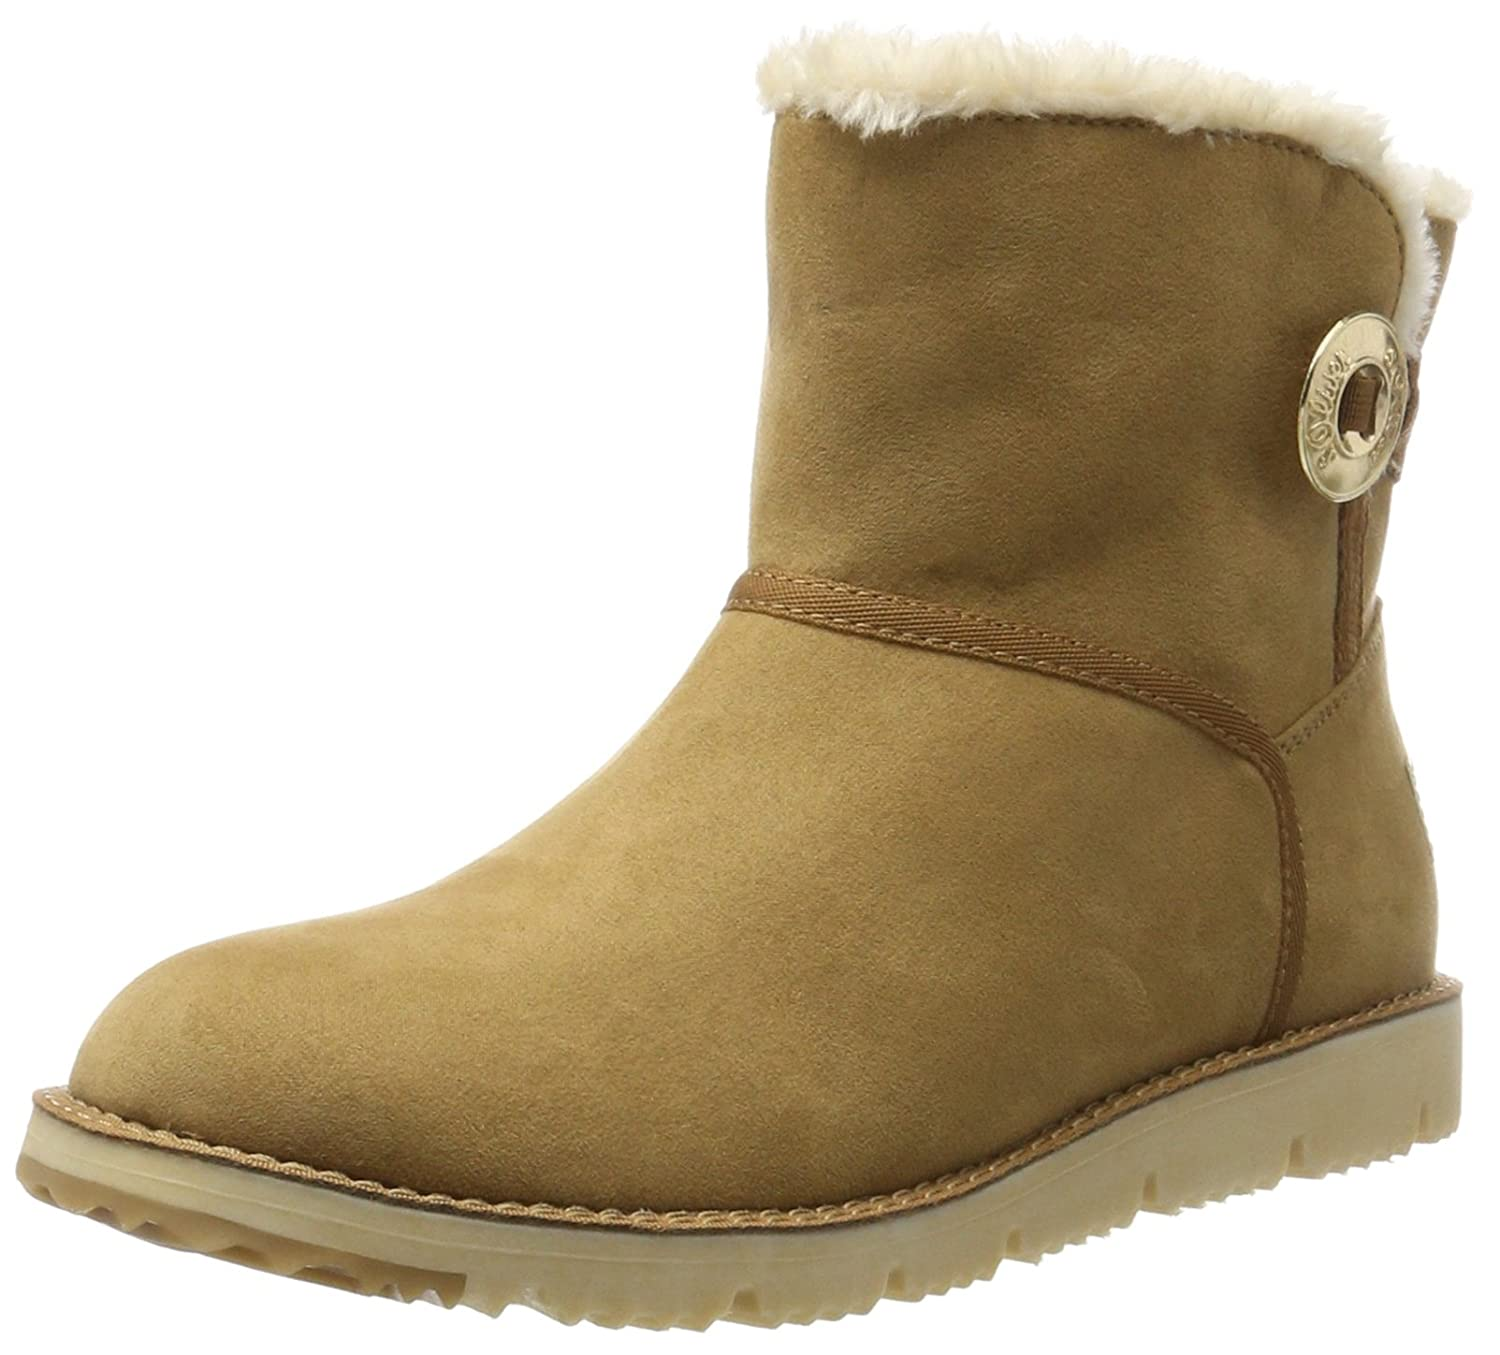 s.Oliver 26412, Botas Slouch para Mujer37 EU|Marrón (Nut)